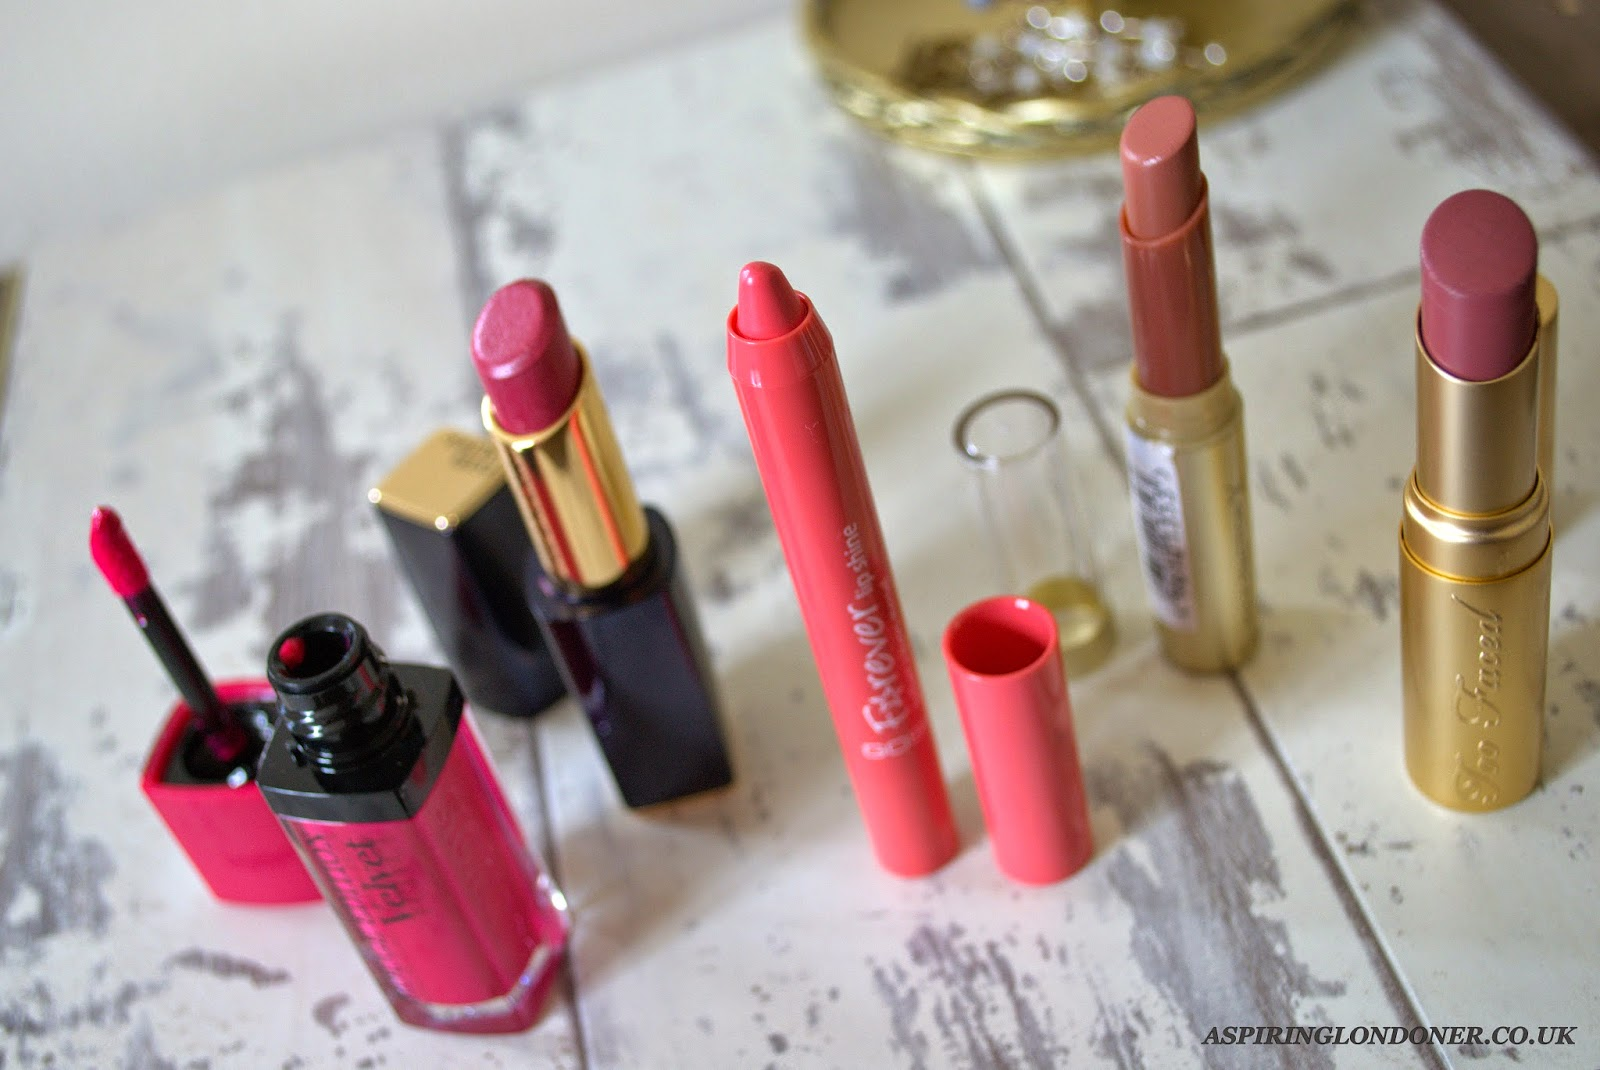 Spring Lipstick Reviews ft Bourjois, Too Faced, GOSH, Estee Lauder, Max Factor - Aspiring Londoner